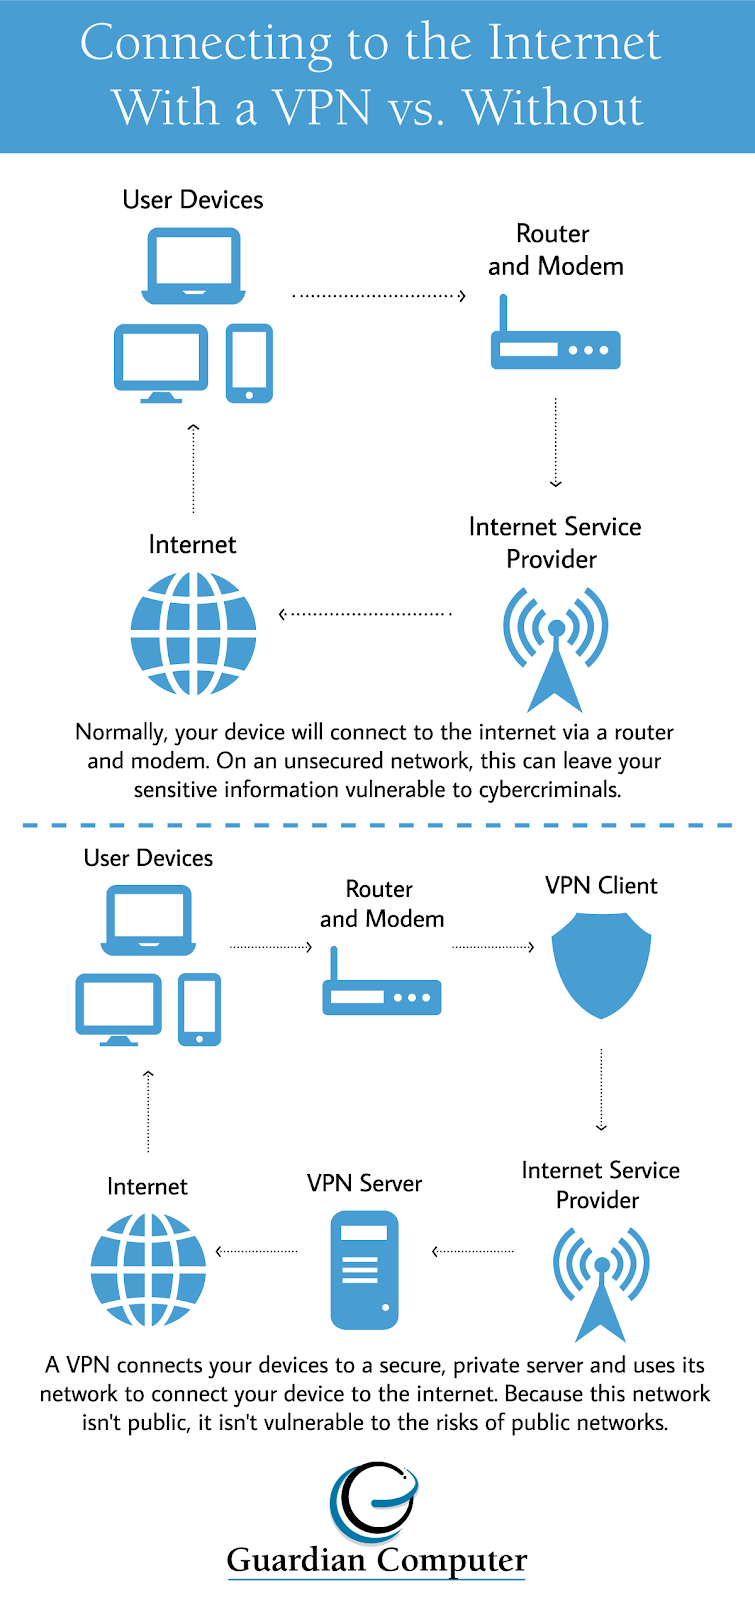 Is it safe to use public WiFi with a VPN? Check out our infographic or keep reading to find out.